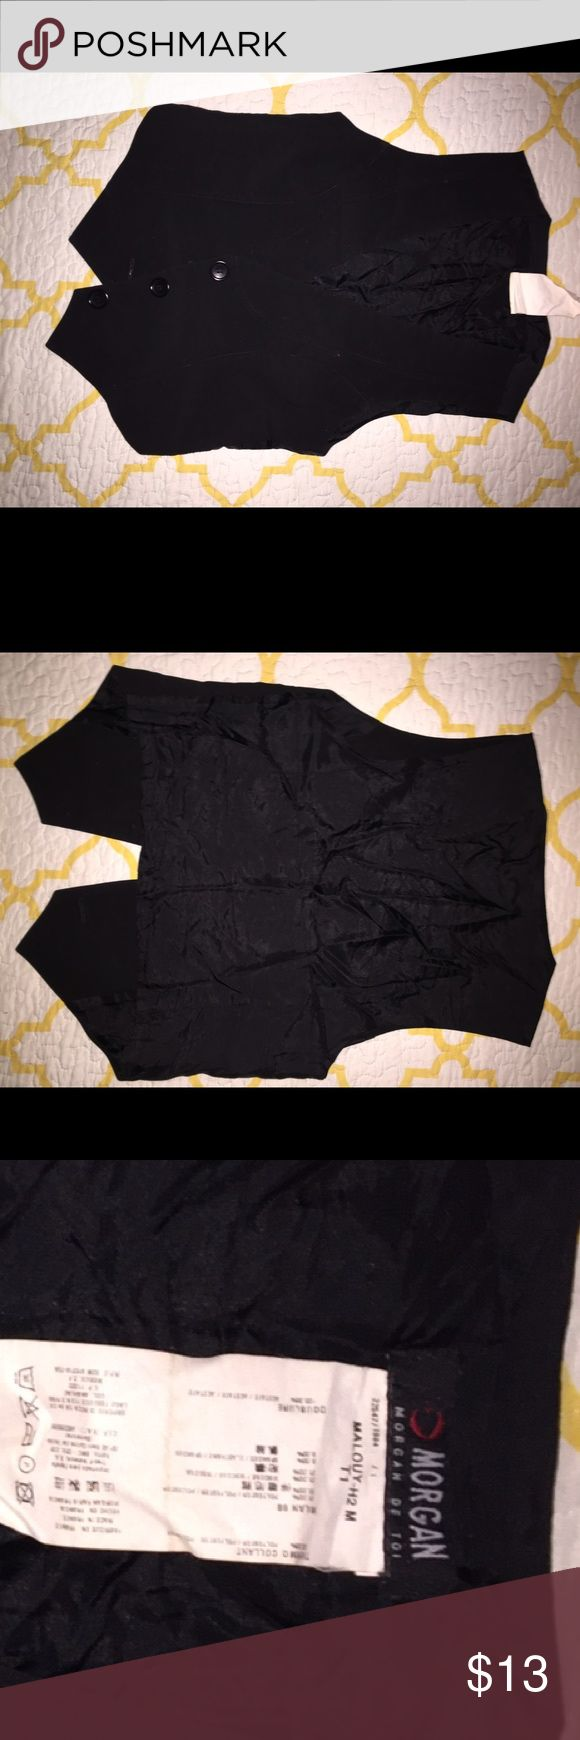 Morgan de Toi vest Cute vest. Can be worn by itself or on top of a shirt. Size 1. Morgan Other